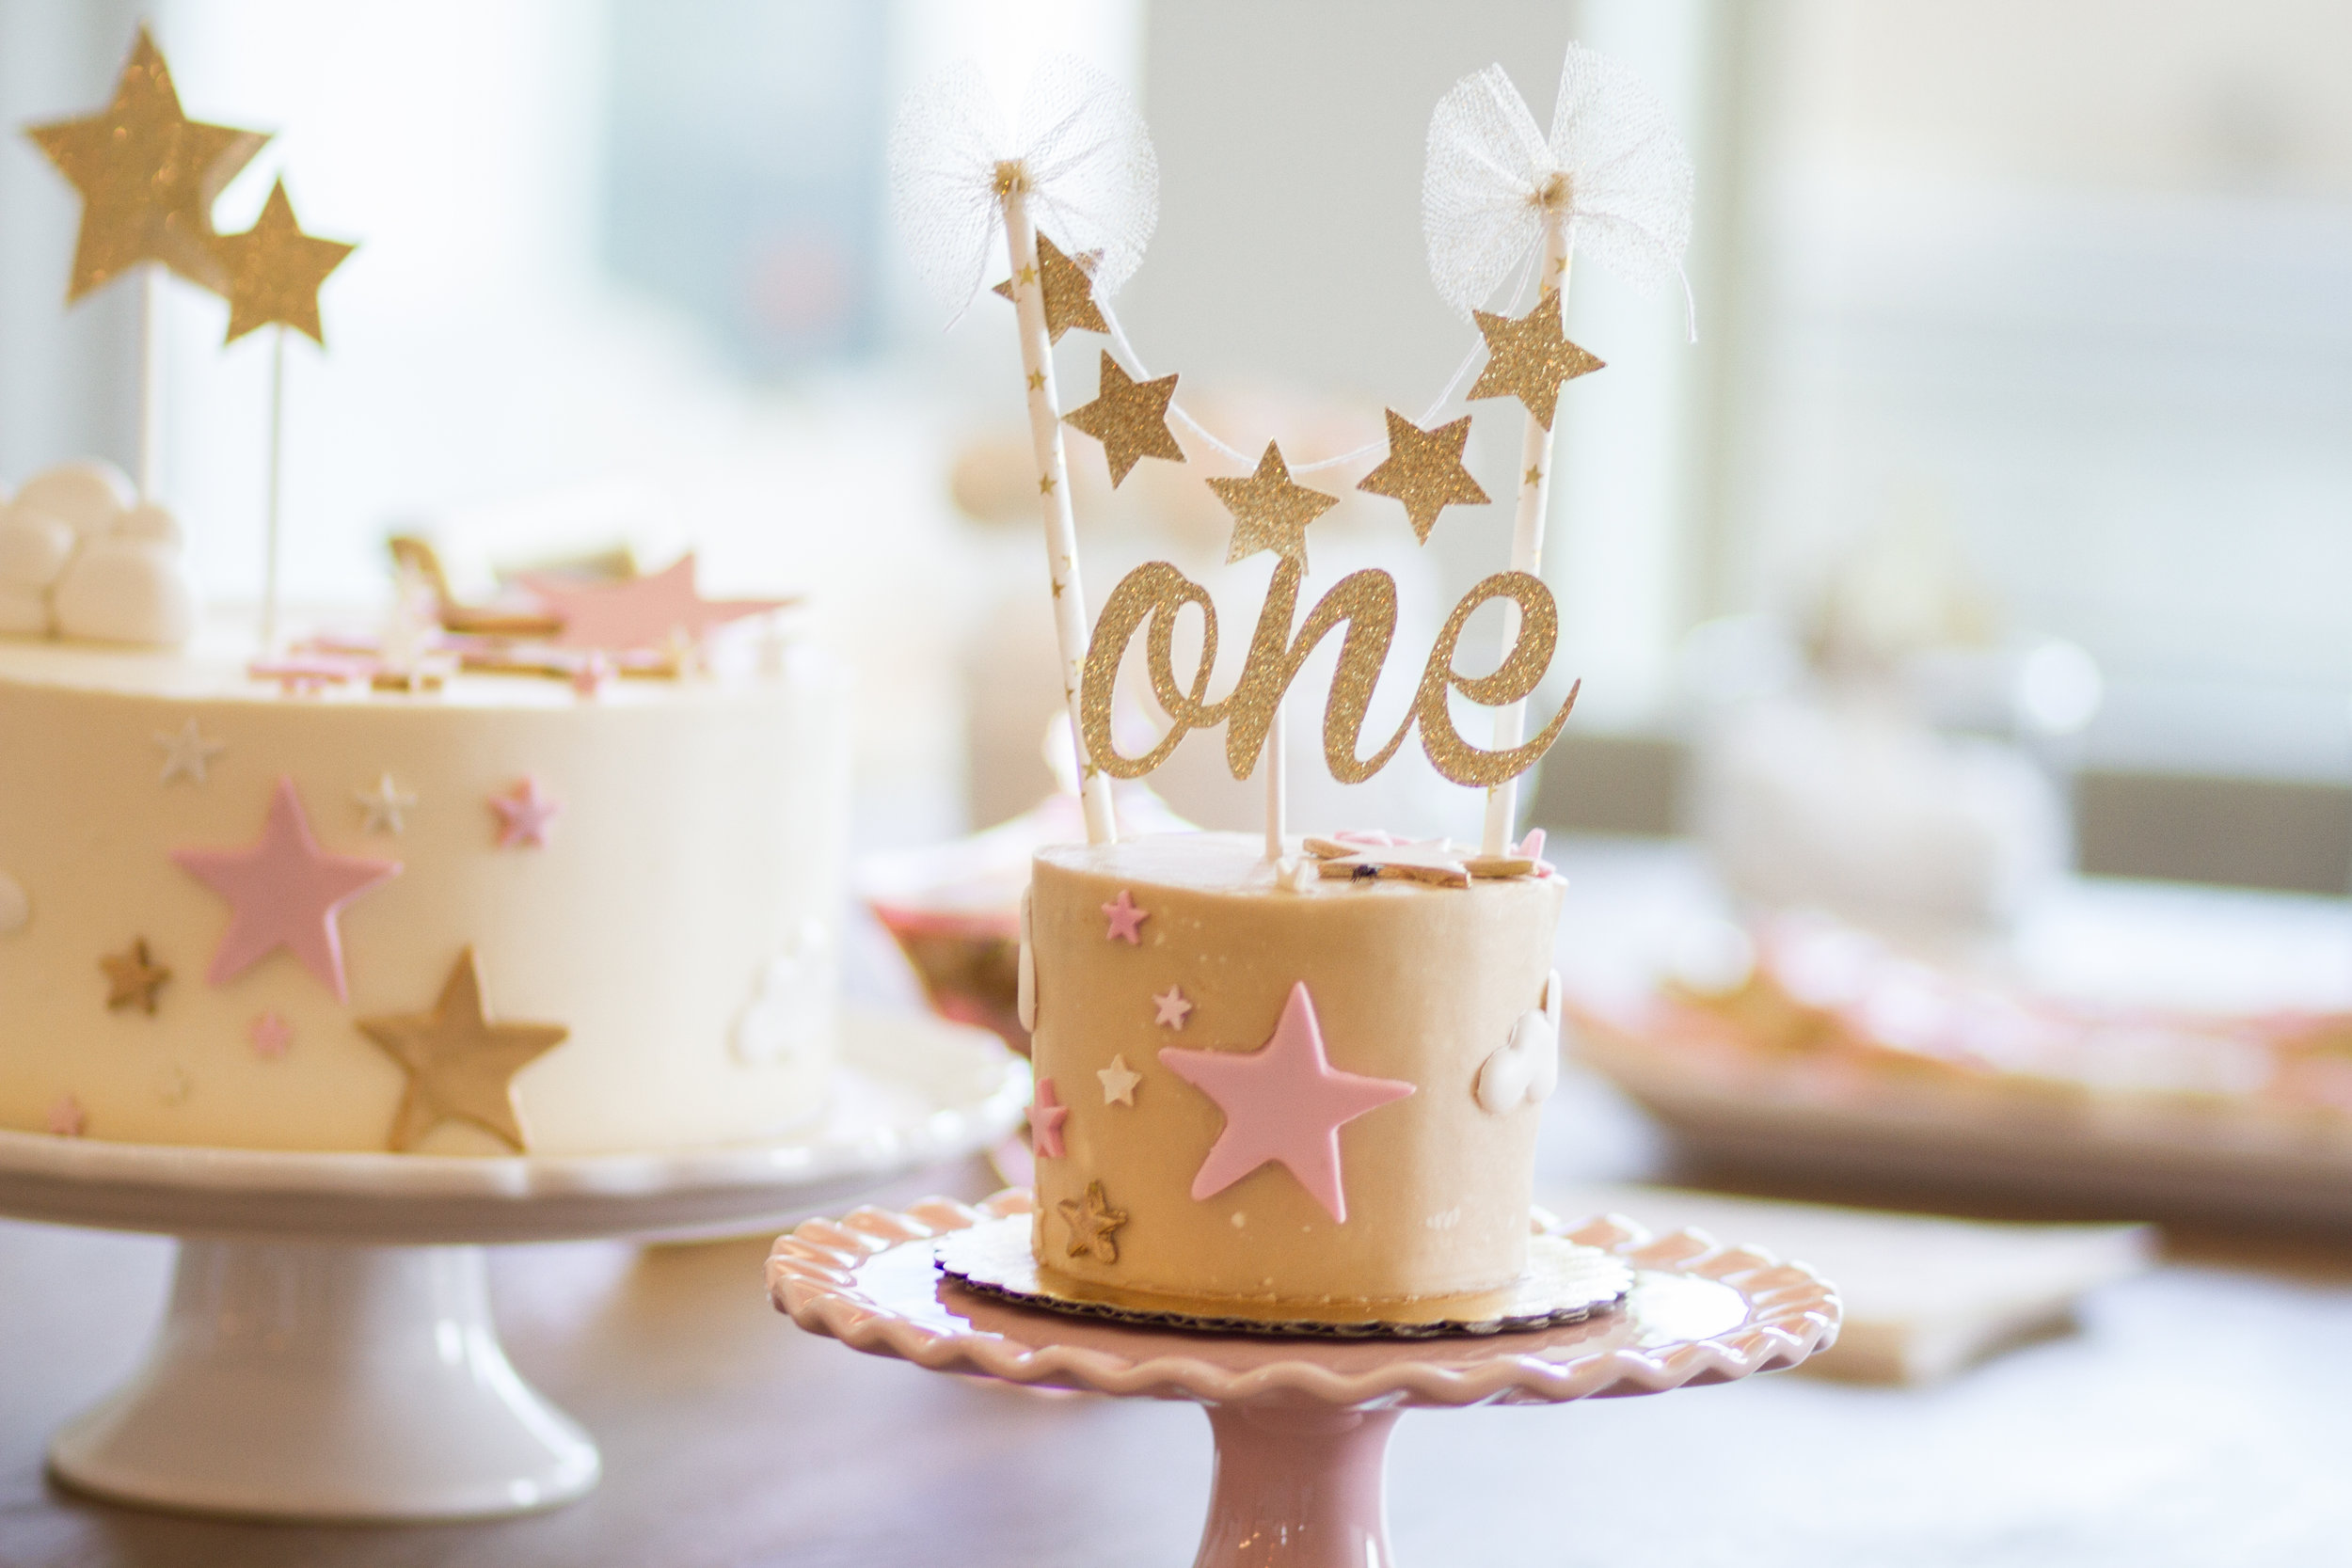 Look at these cakes! So STINKING CUTE!